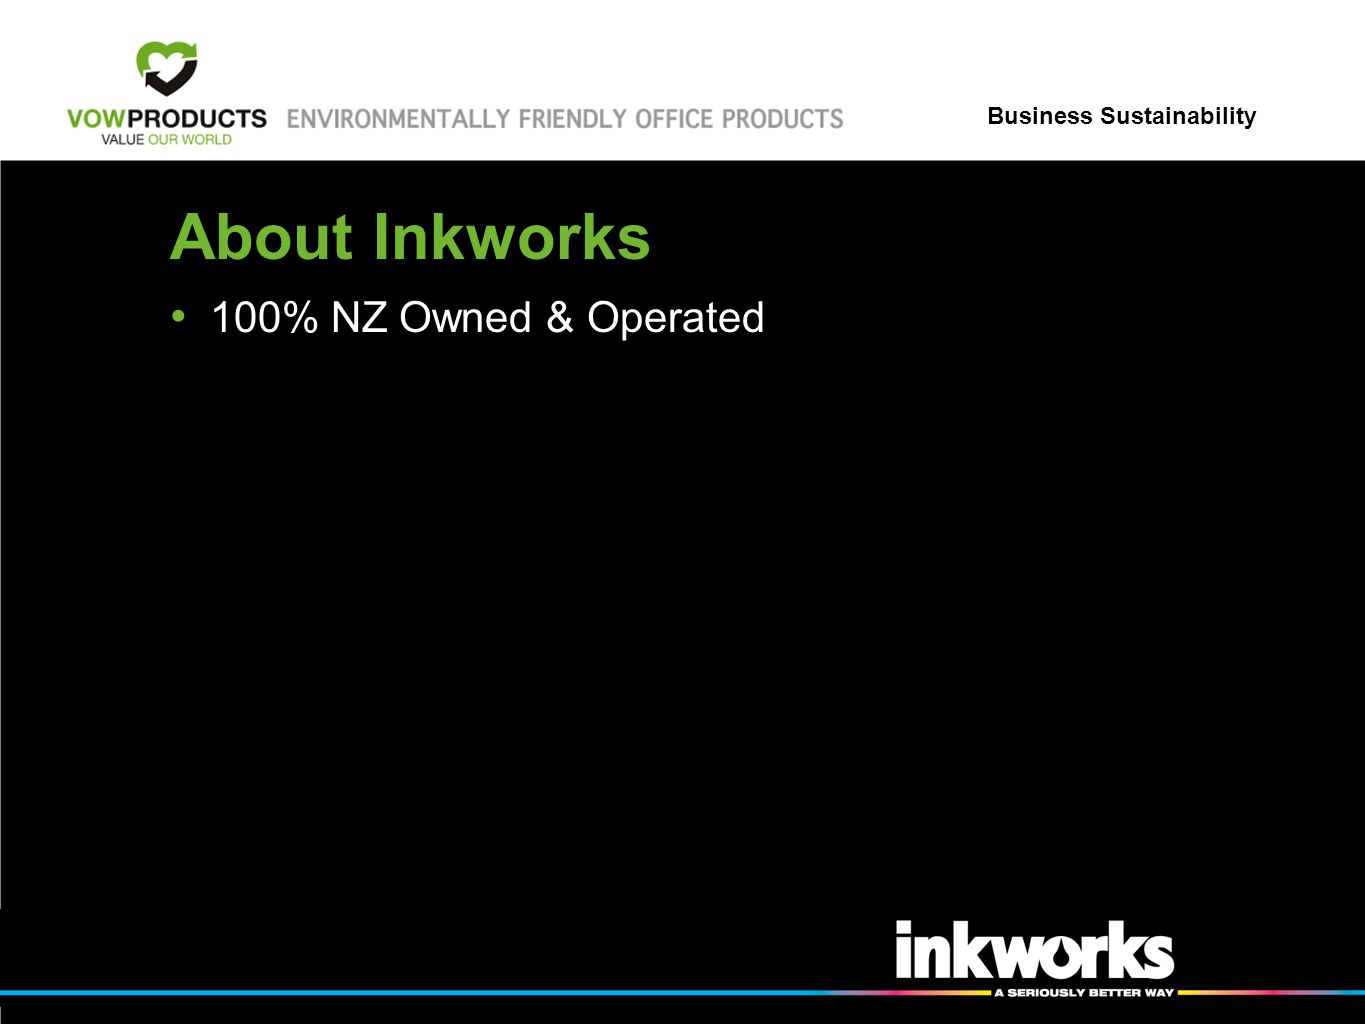 About Inkworks 100% NZ Owned & Operated